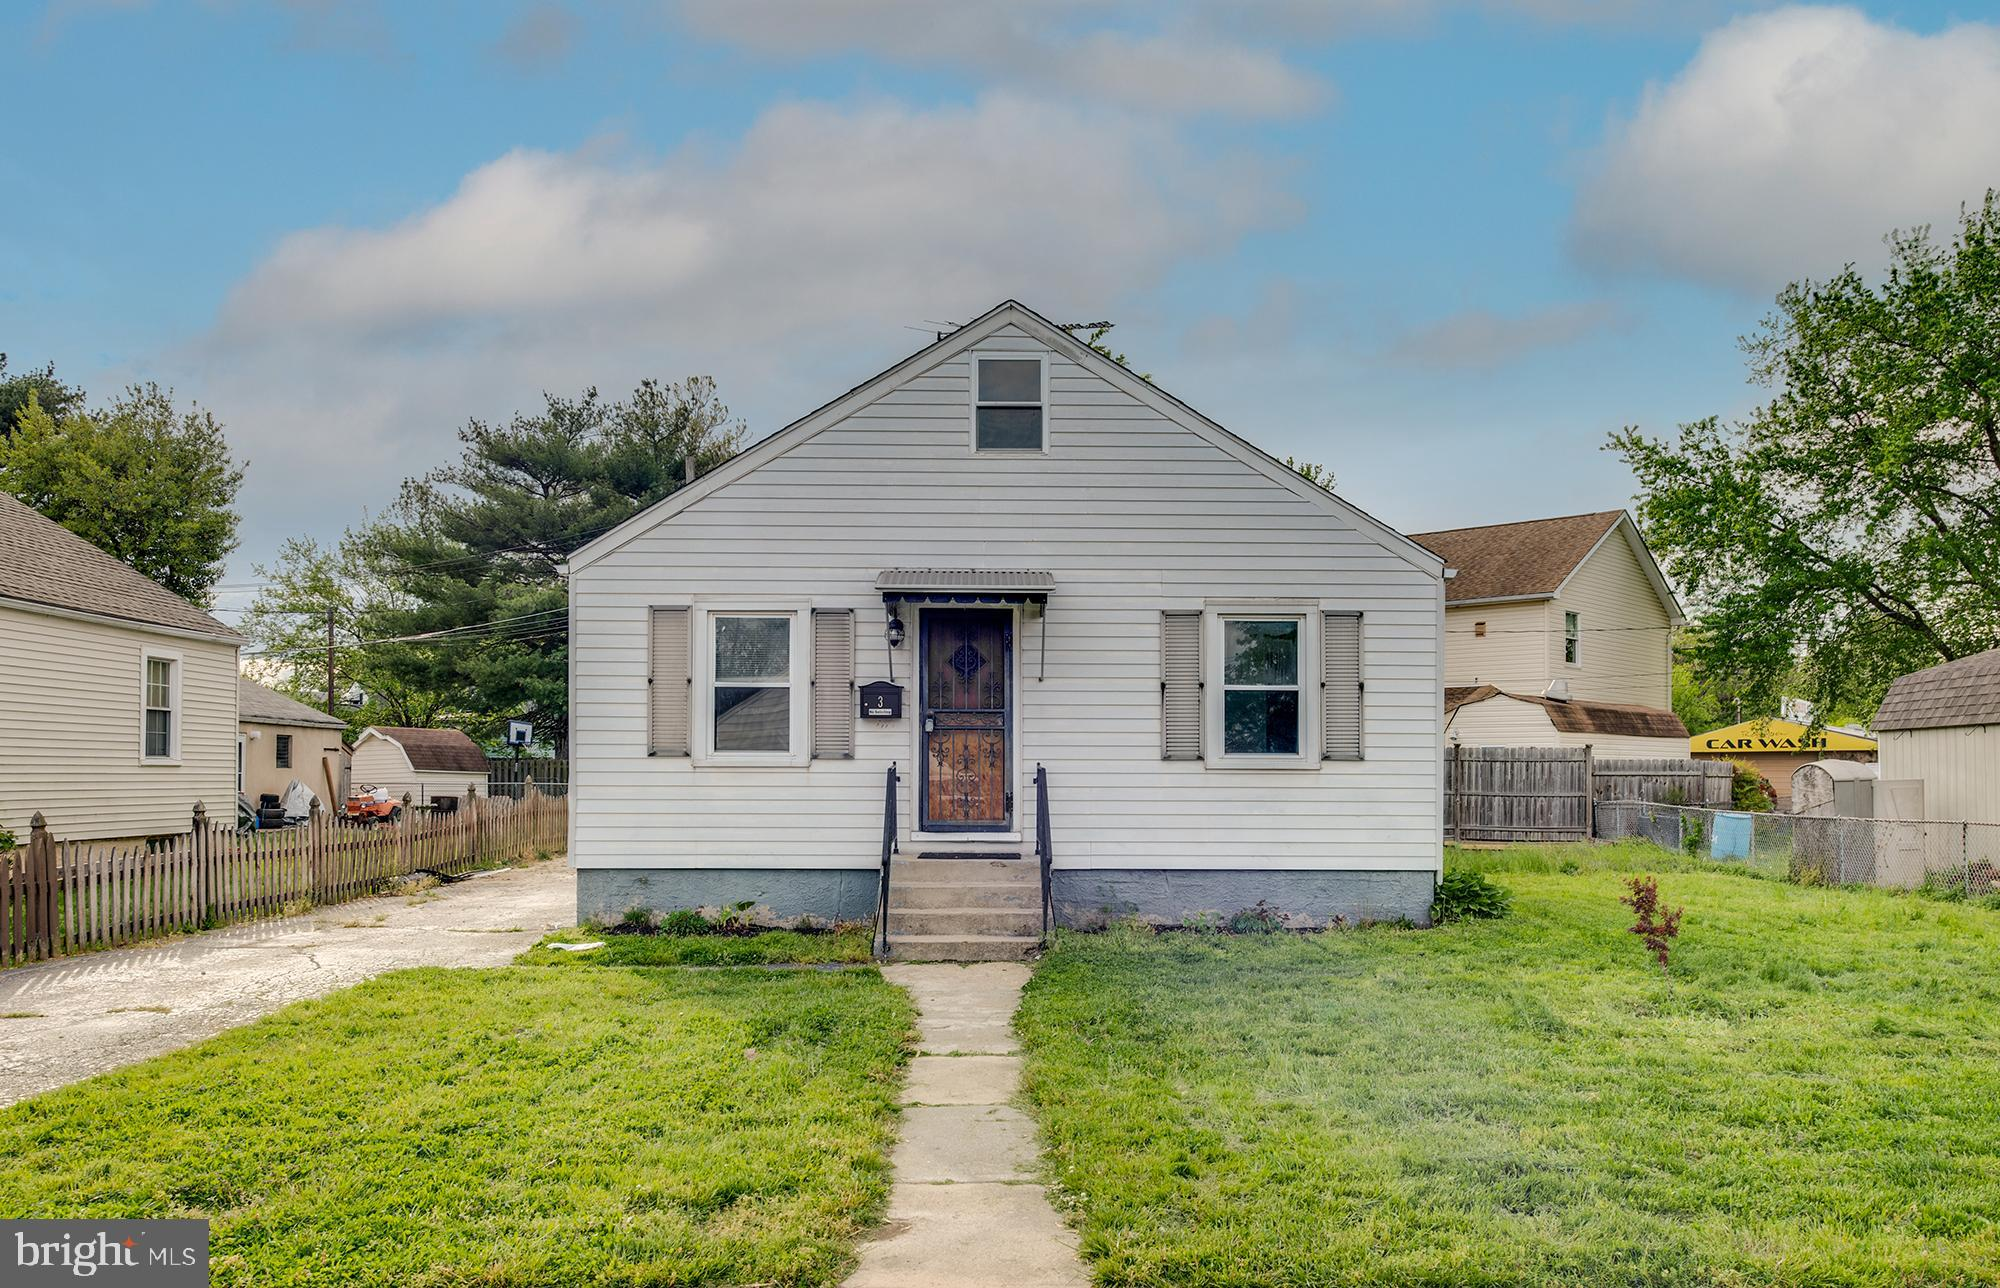 This charming Dundalk home features a large living room space, two spacious bedrooms on the main level, a full bathroom, large eat in kitchen, large back and front yards,  and a vented attic space that could be converted to a loft! This home is move in ready, but could also be an opportunity to update a home exactly the way you want to!